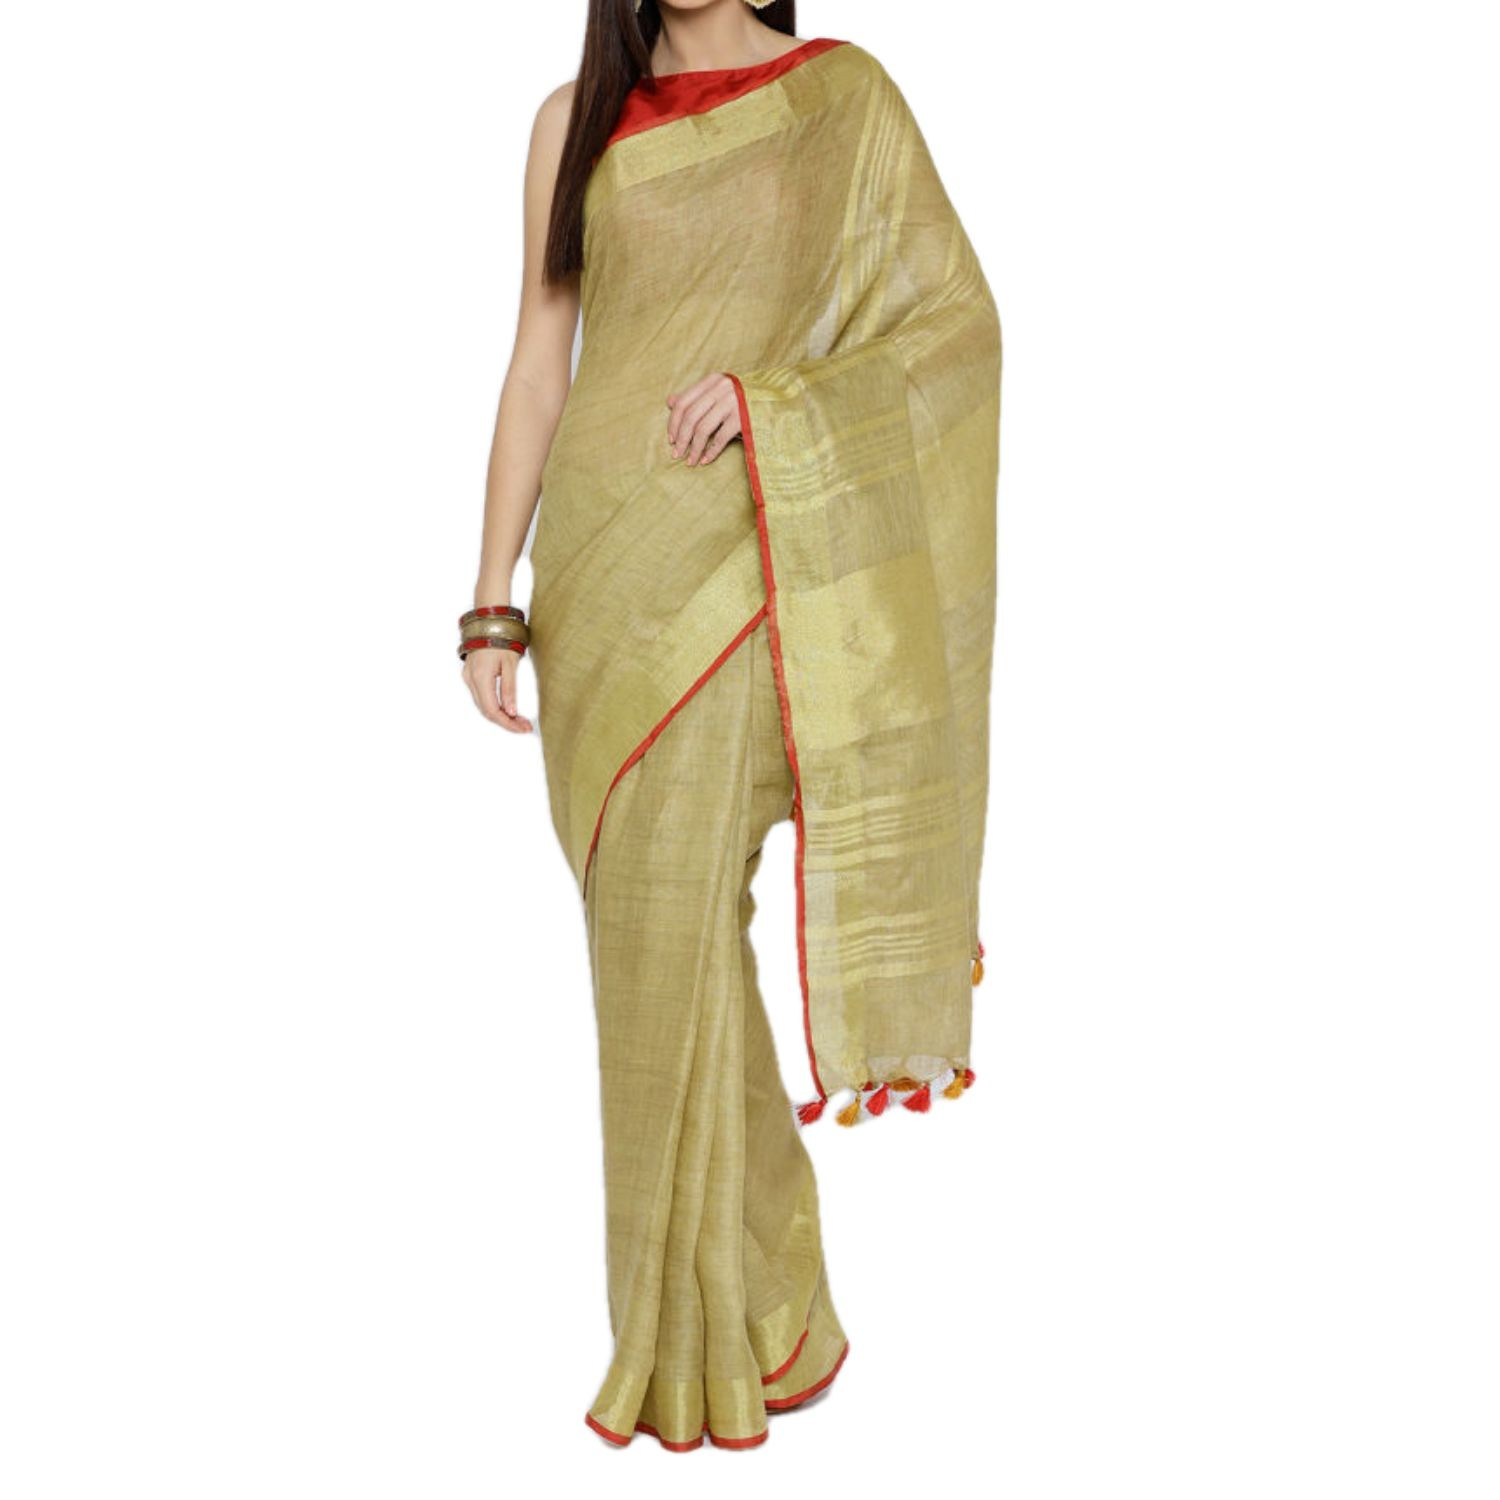 Exclusive Ethnic Indian Women's Bhagalpuri Handloom Cotton linen saree with Red border with beautifully decorate soft tussels By Weaver'S Of Bhagalpur Bihar